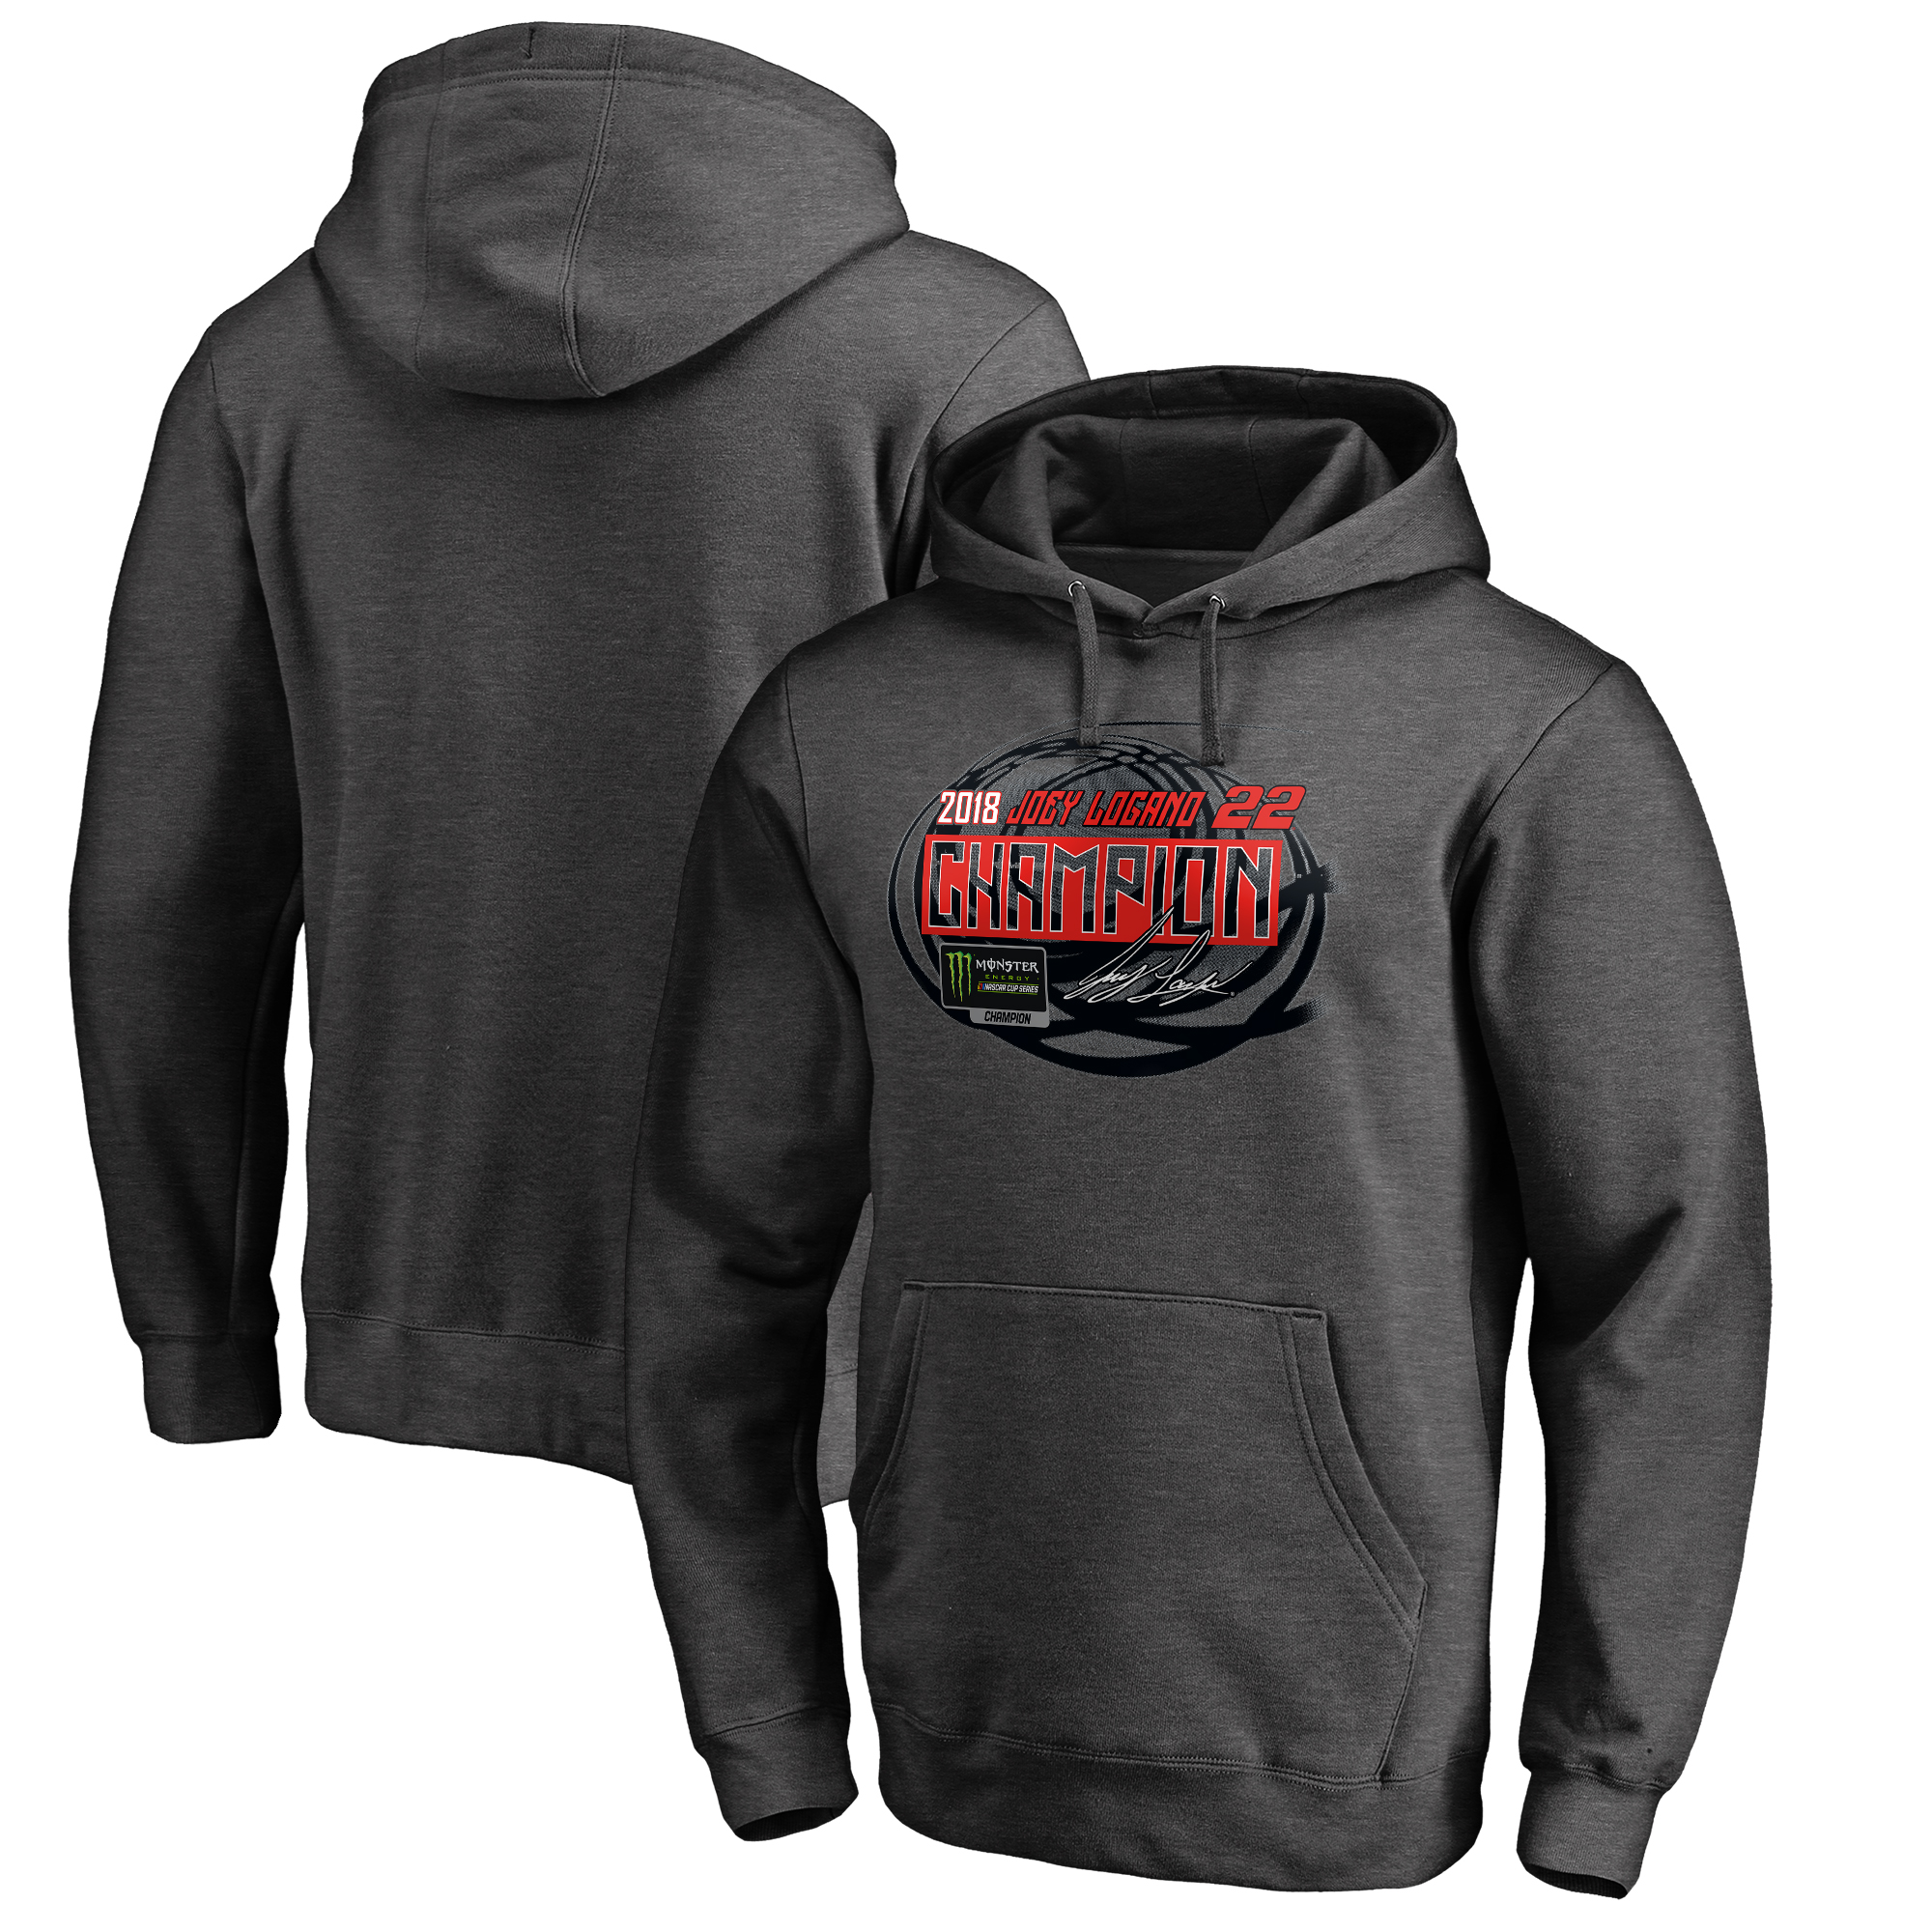 Joey Logano Fanatics Branded 2018 Monster Energy NASCAR Cup Series Champion Winner's Circle Pullover Hoodie - Heather Gray